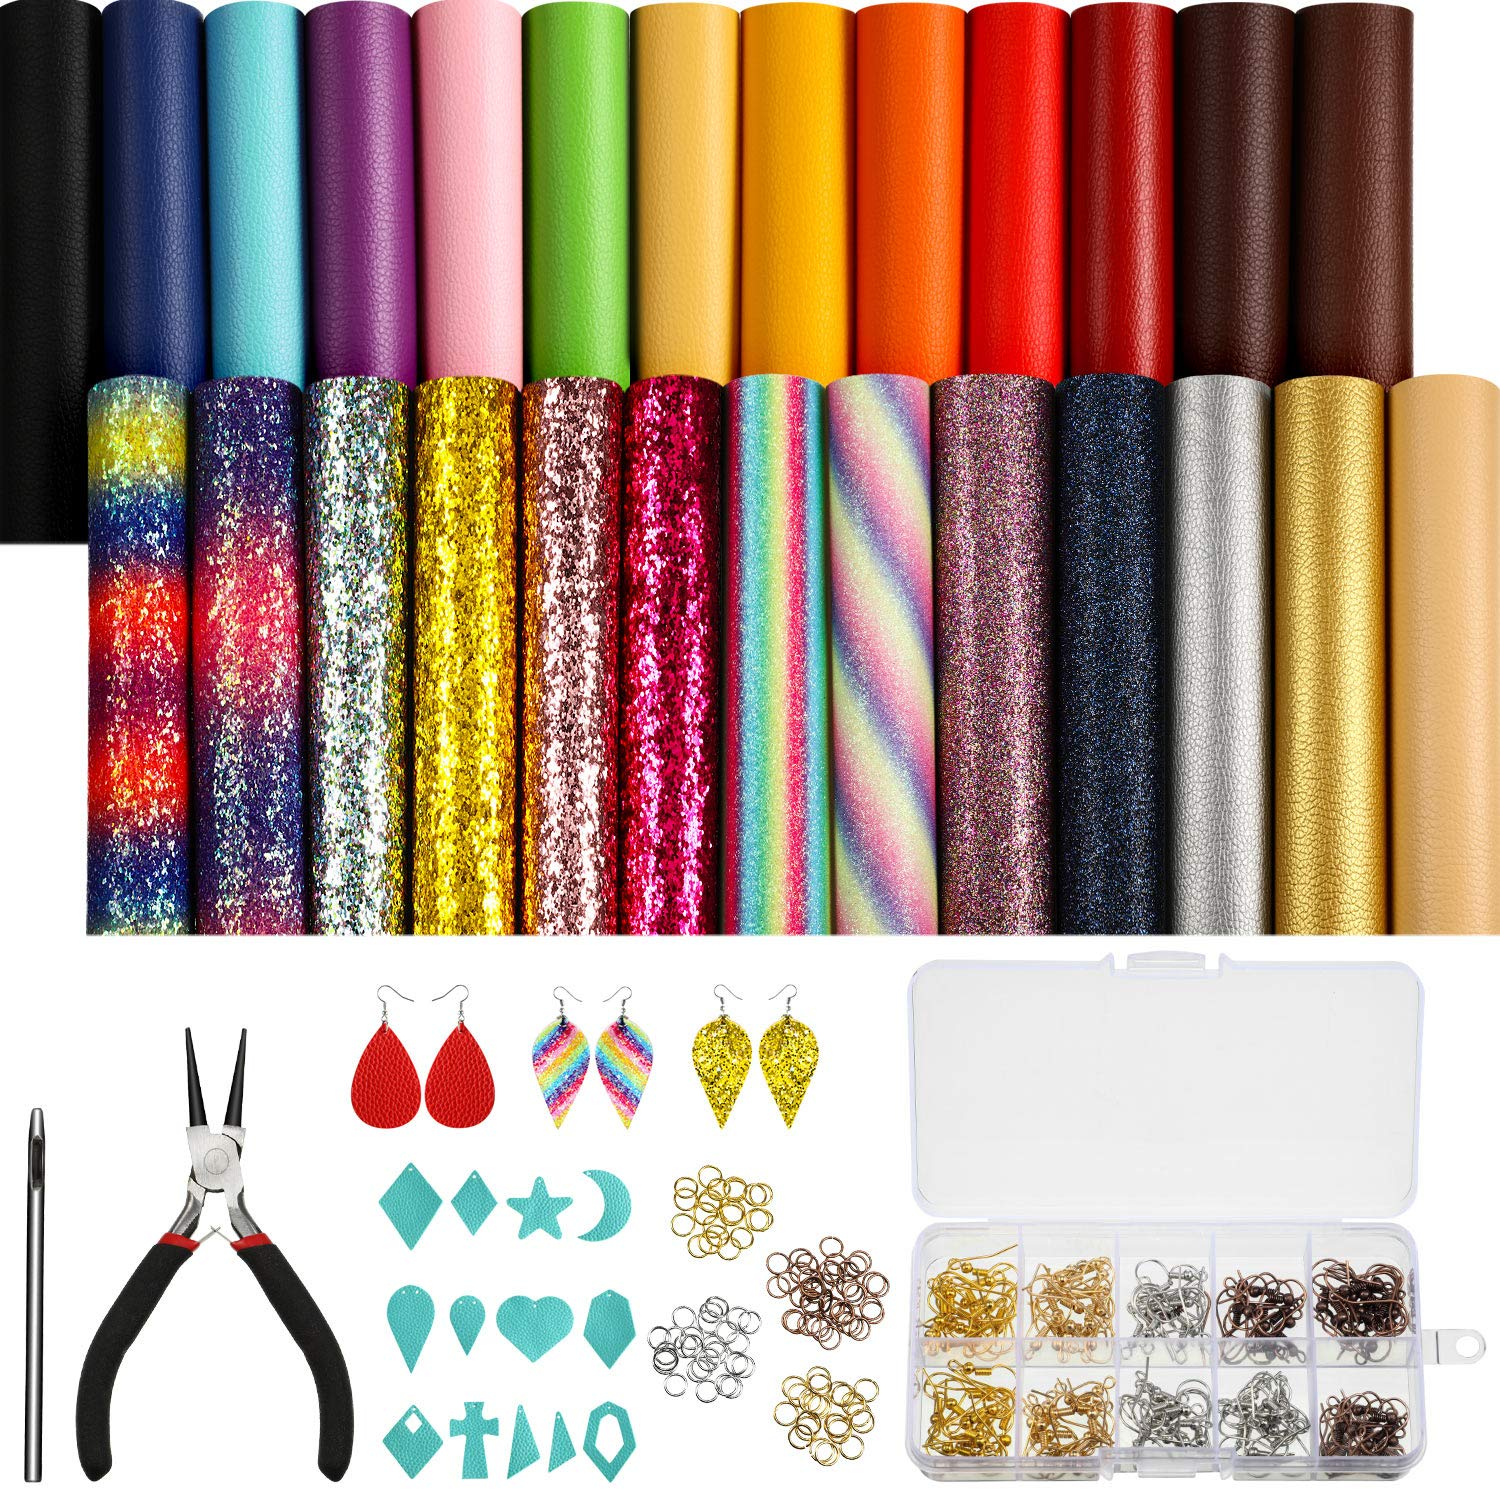 26 Pieces Bright Faux Leather Sheets 6 x 6 Inch, 140 Pieces Earring Hooks, 140 Pieces Jump Rings, 13 Pieces Various Shapes Molds for Earring Making Crafts, Plier and Hole Puncher by Blulu